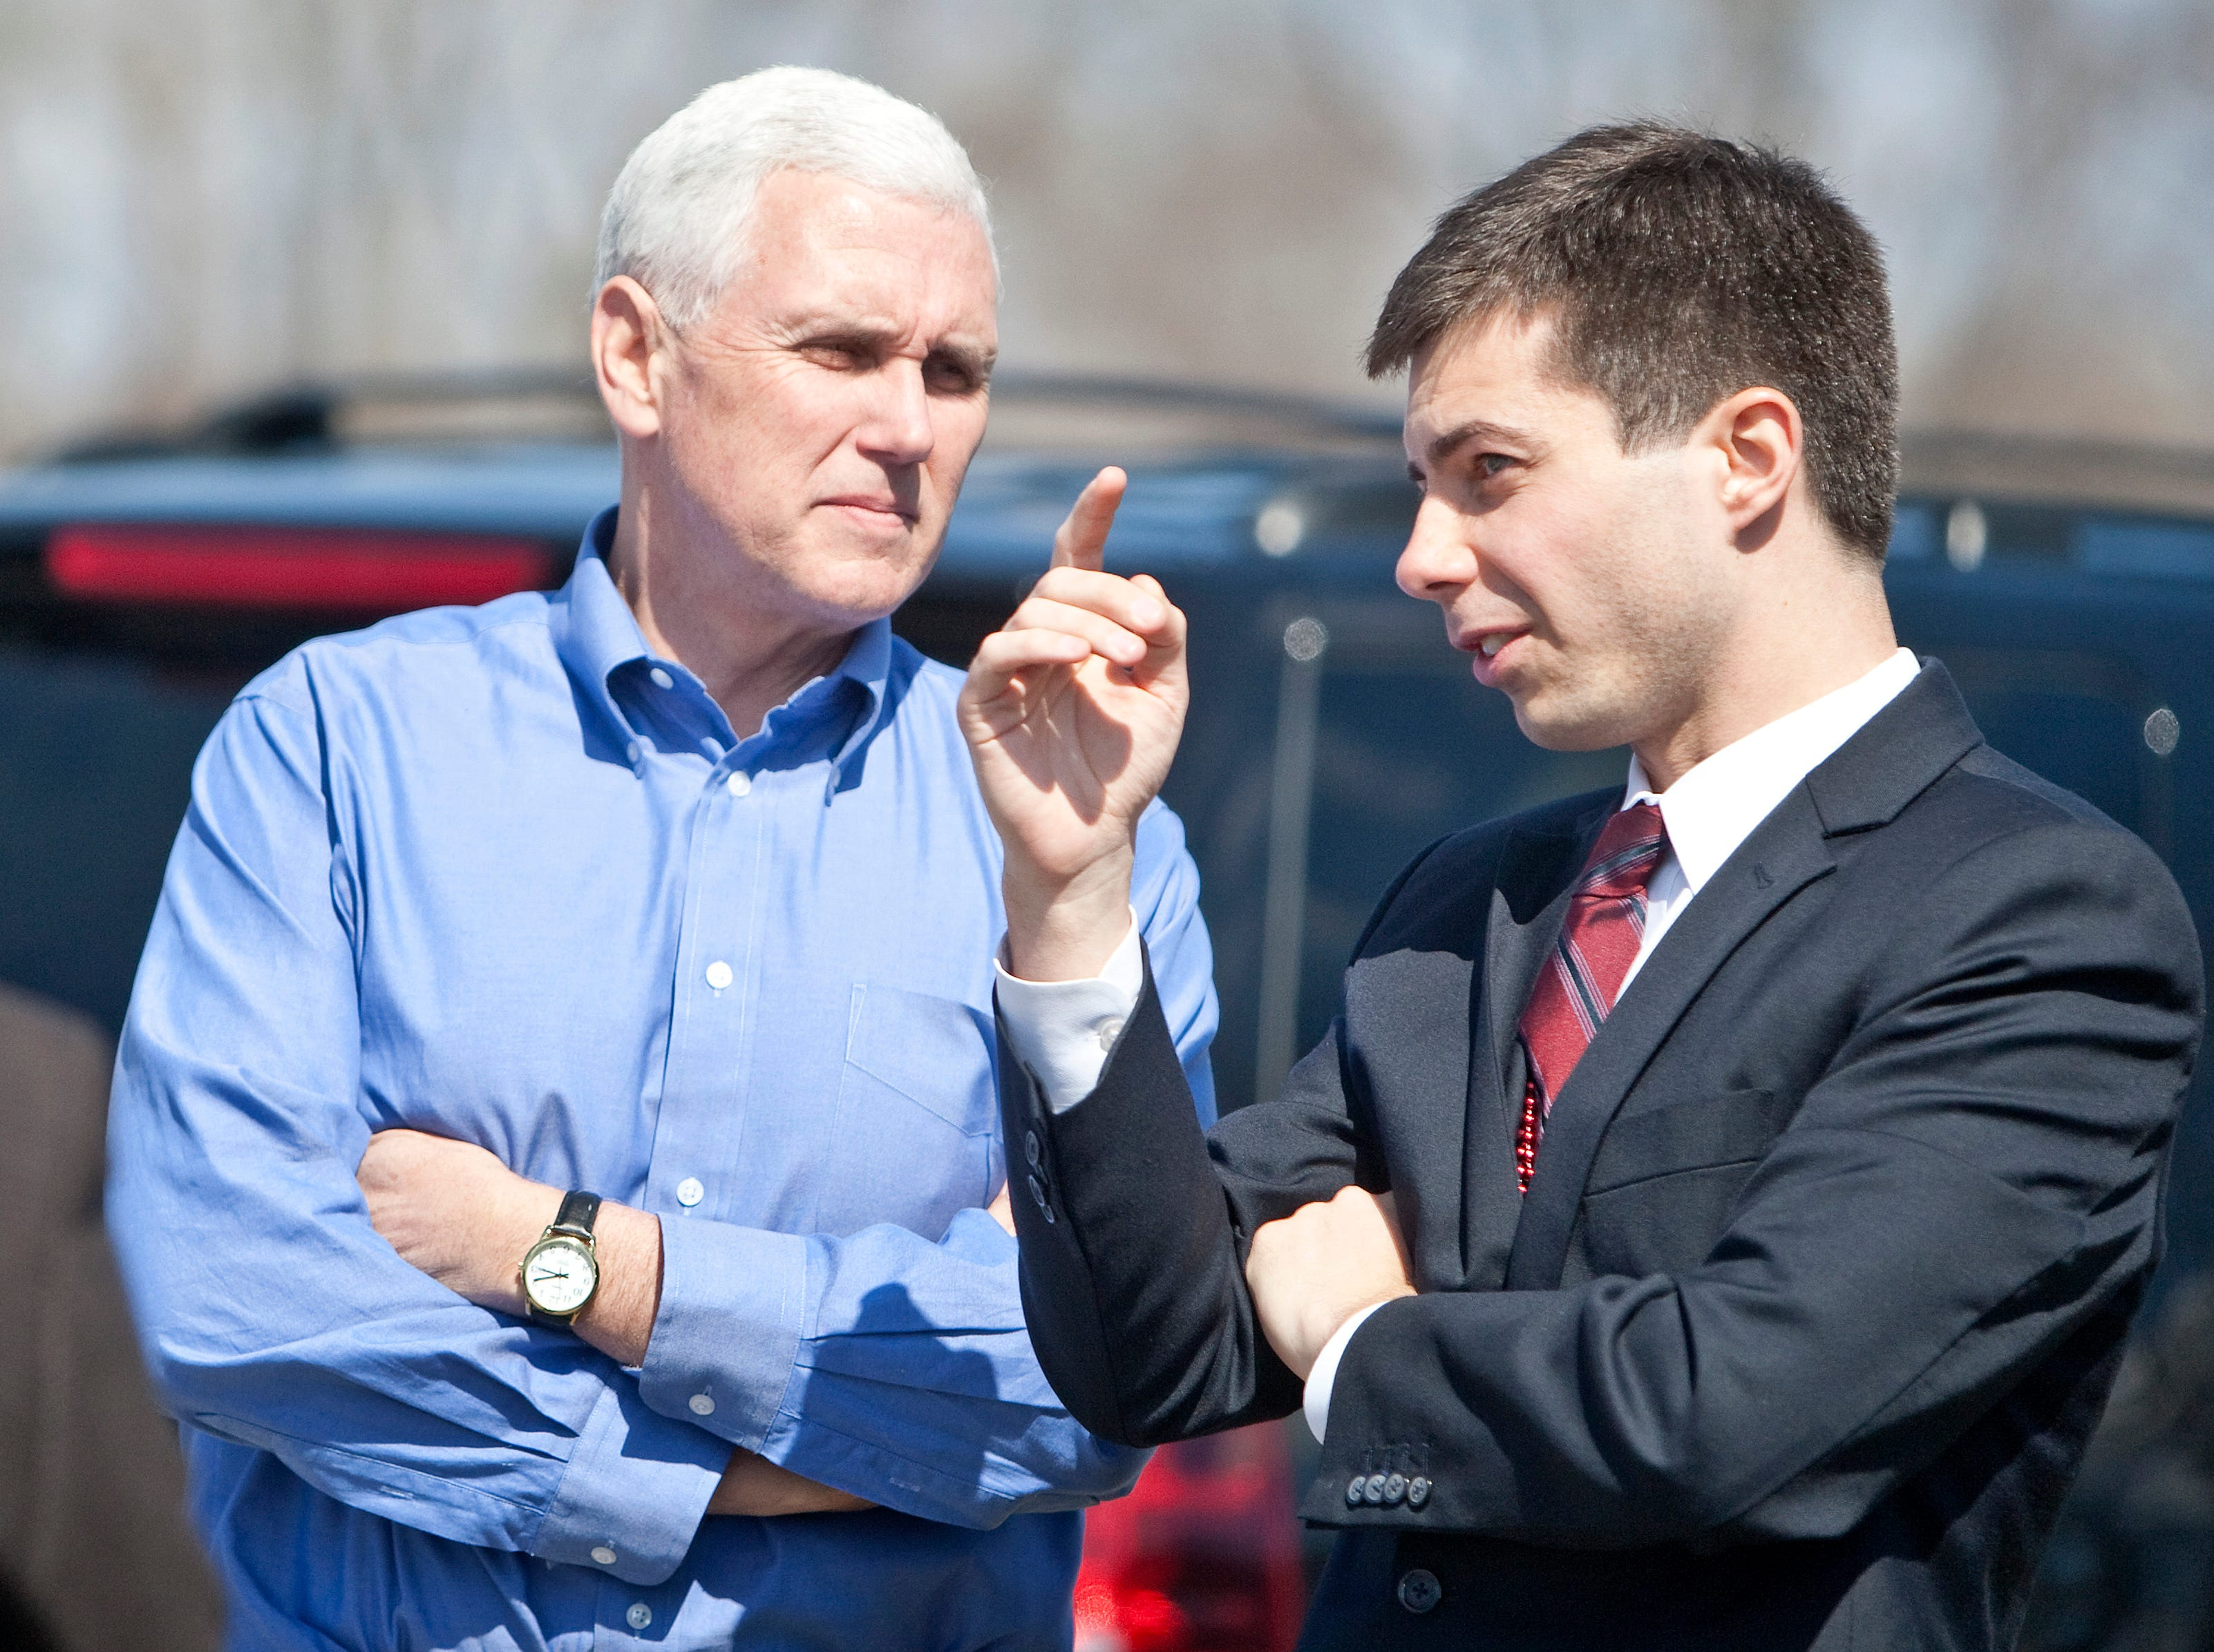 The 'weird parallels' between Mike Pence and presidential hopeful Pete Buttigieg